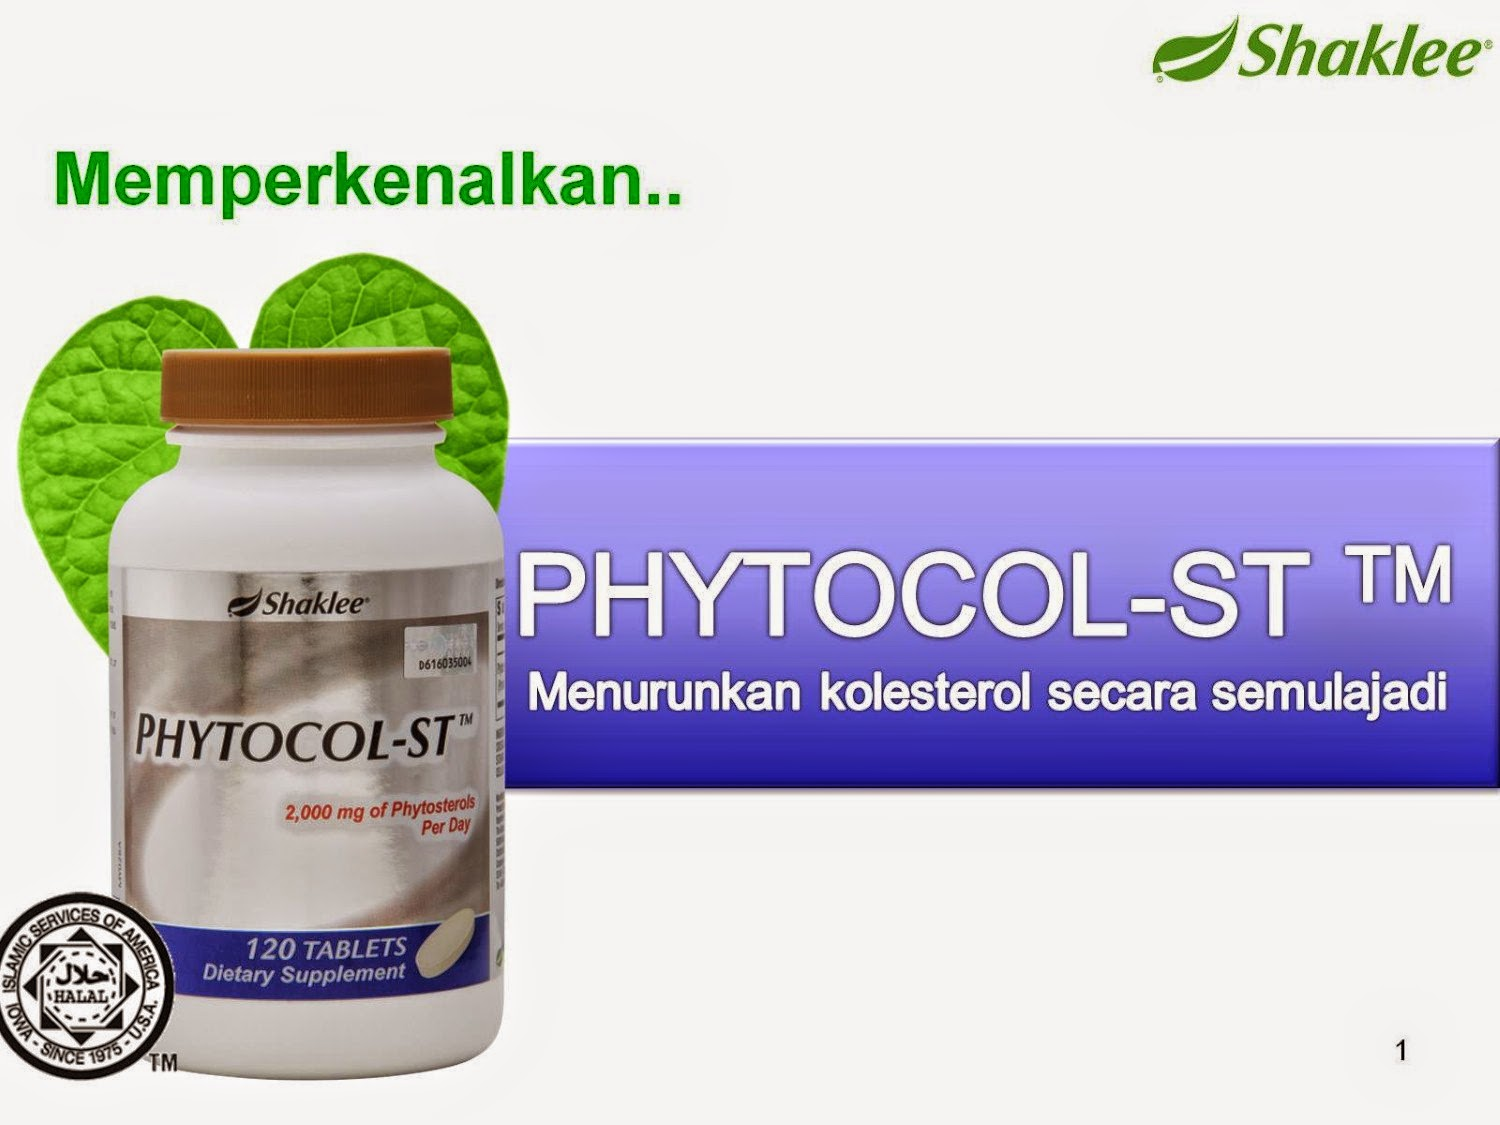 http://ella-hussein.blogspot.com/search/label/%E2%9C%A4Phytocol-ST